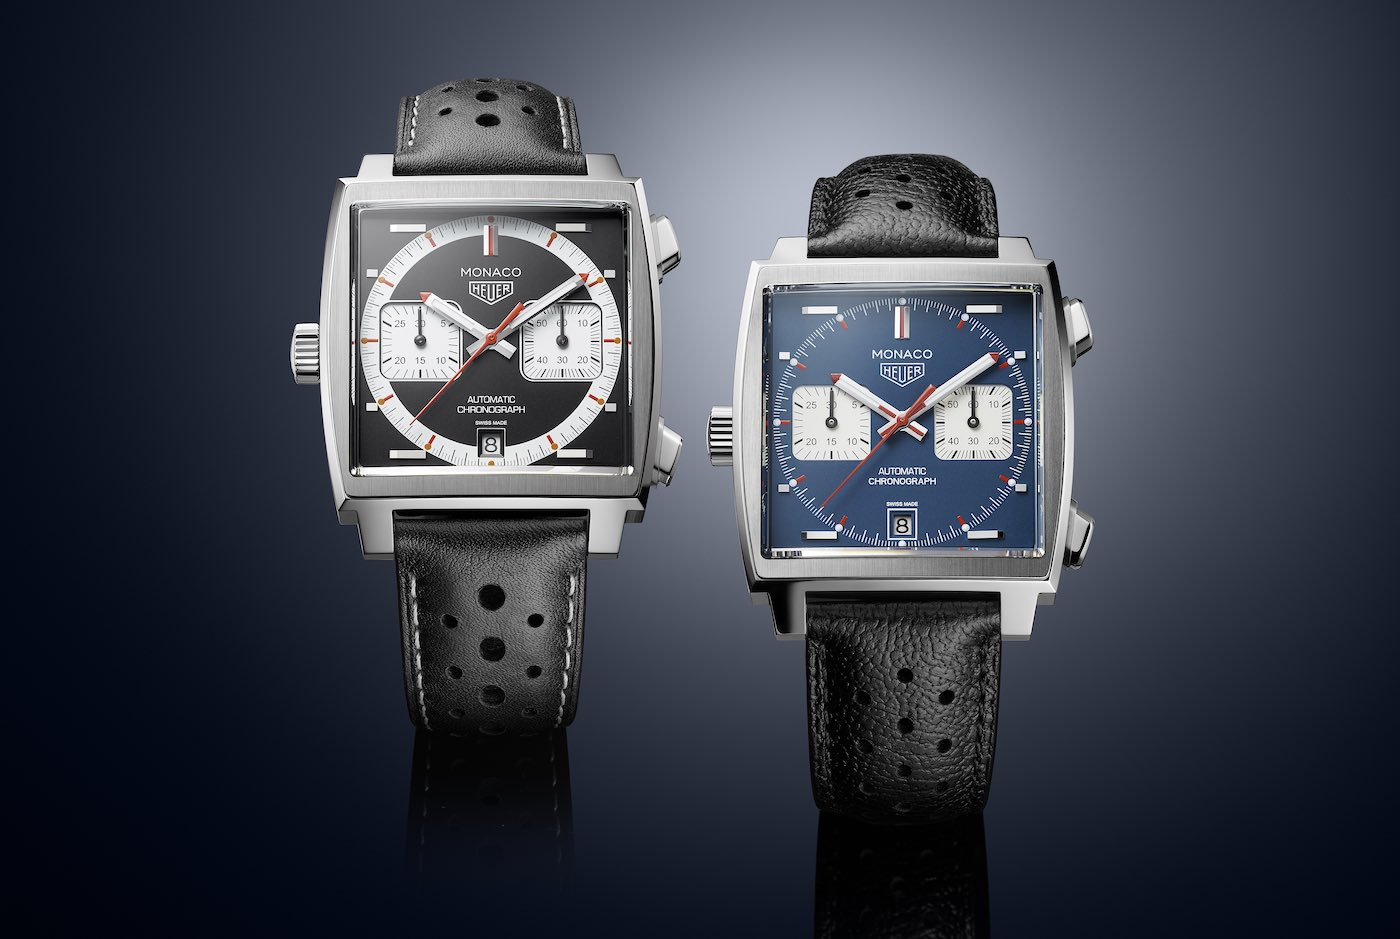 TAG Heuer Monaco 1999-2009 Watch Takes Us Back To The Aughts